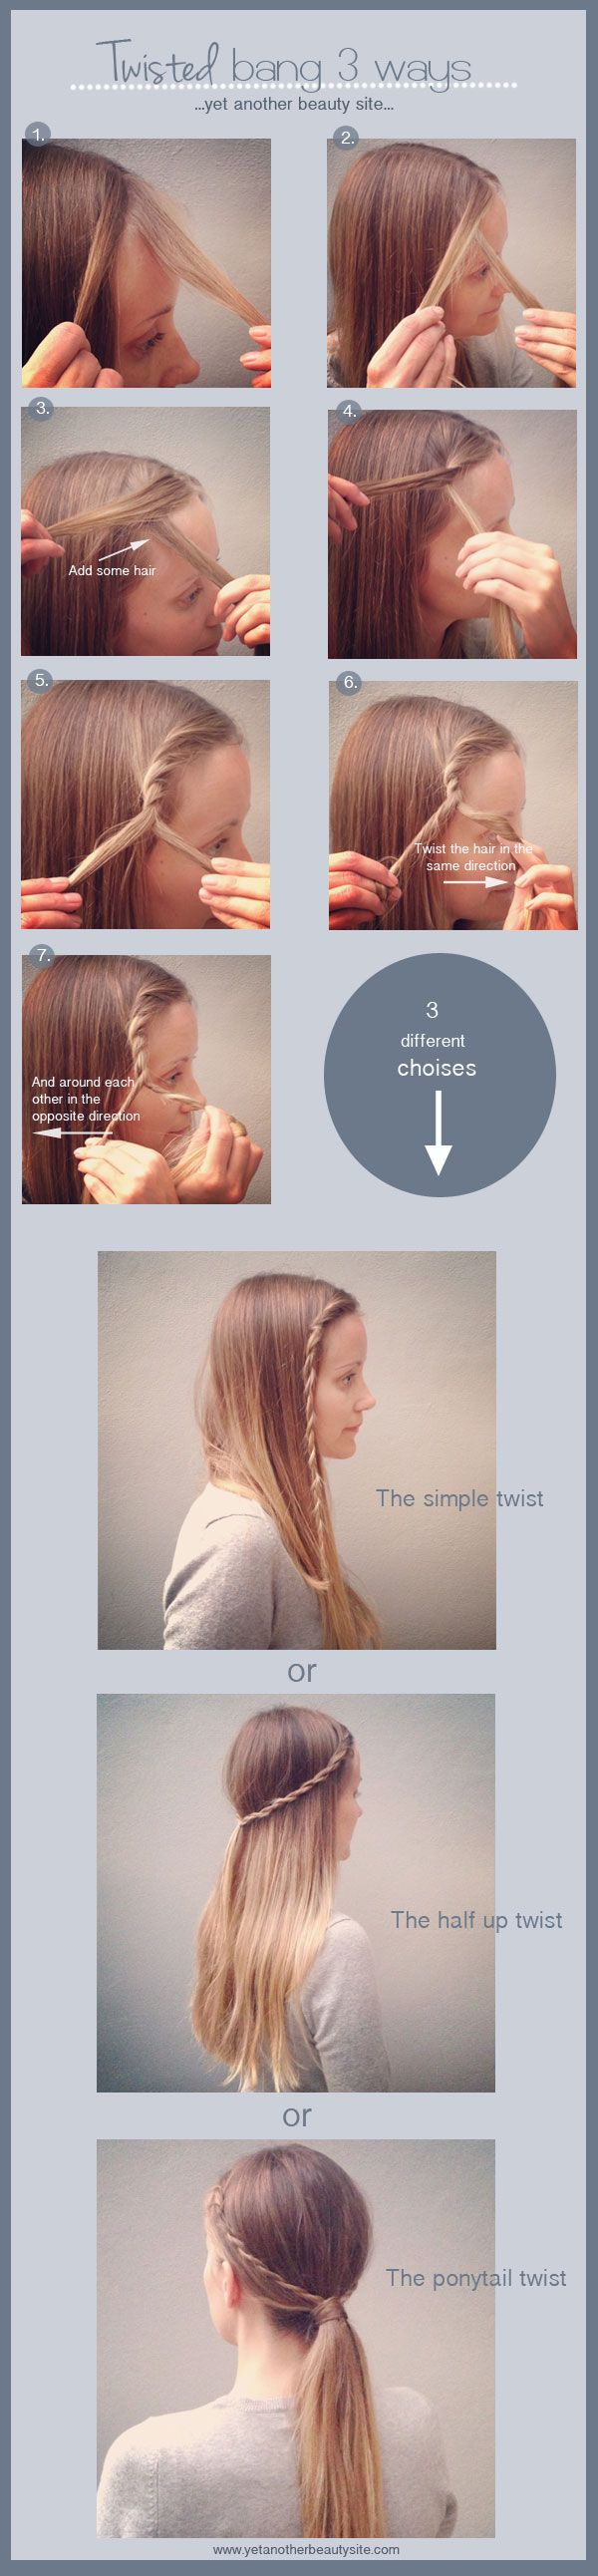 3 different Hair Twist ideas- Easy ideas for older kids to do themselves.